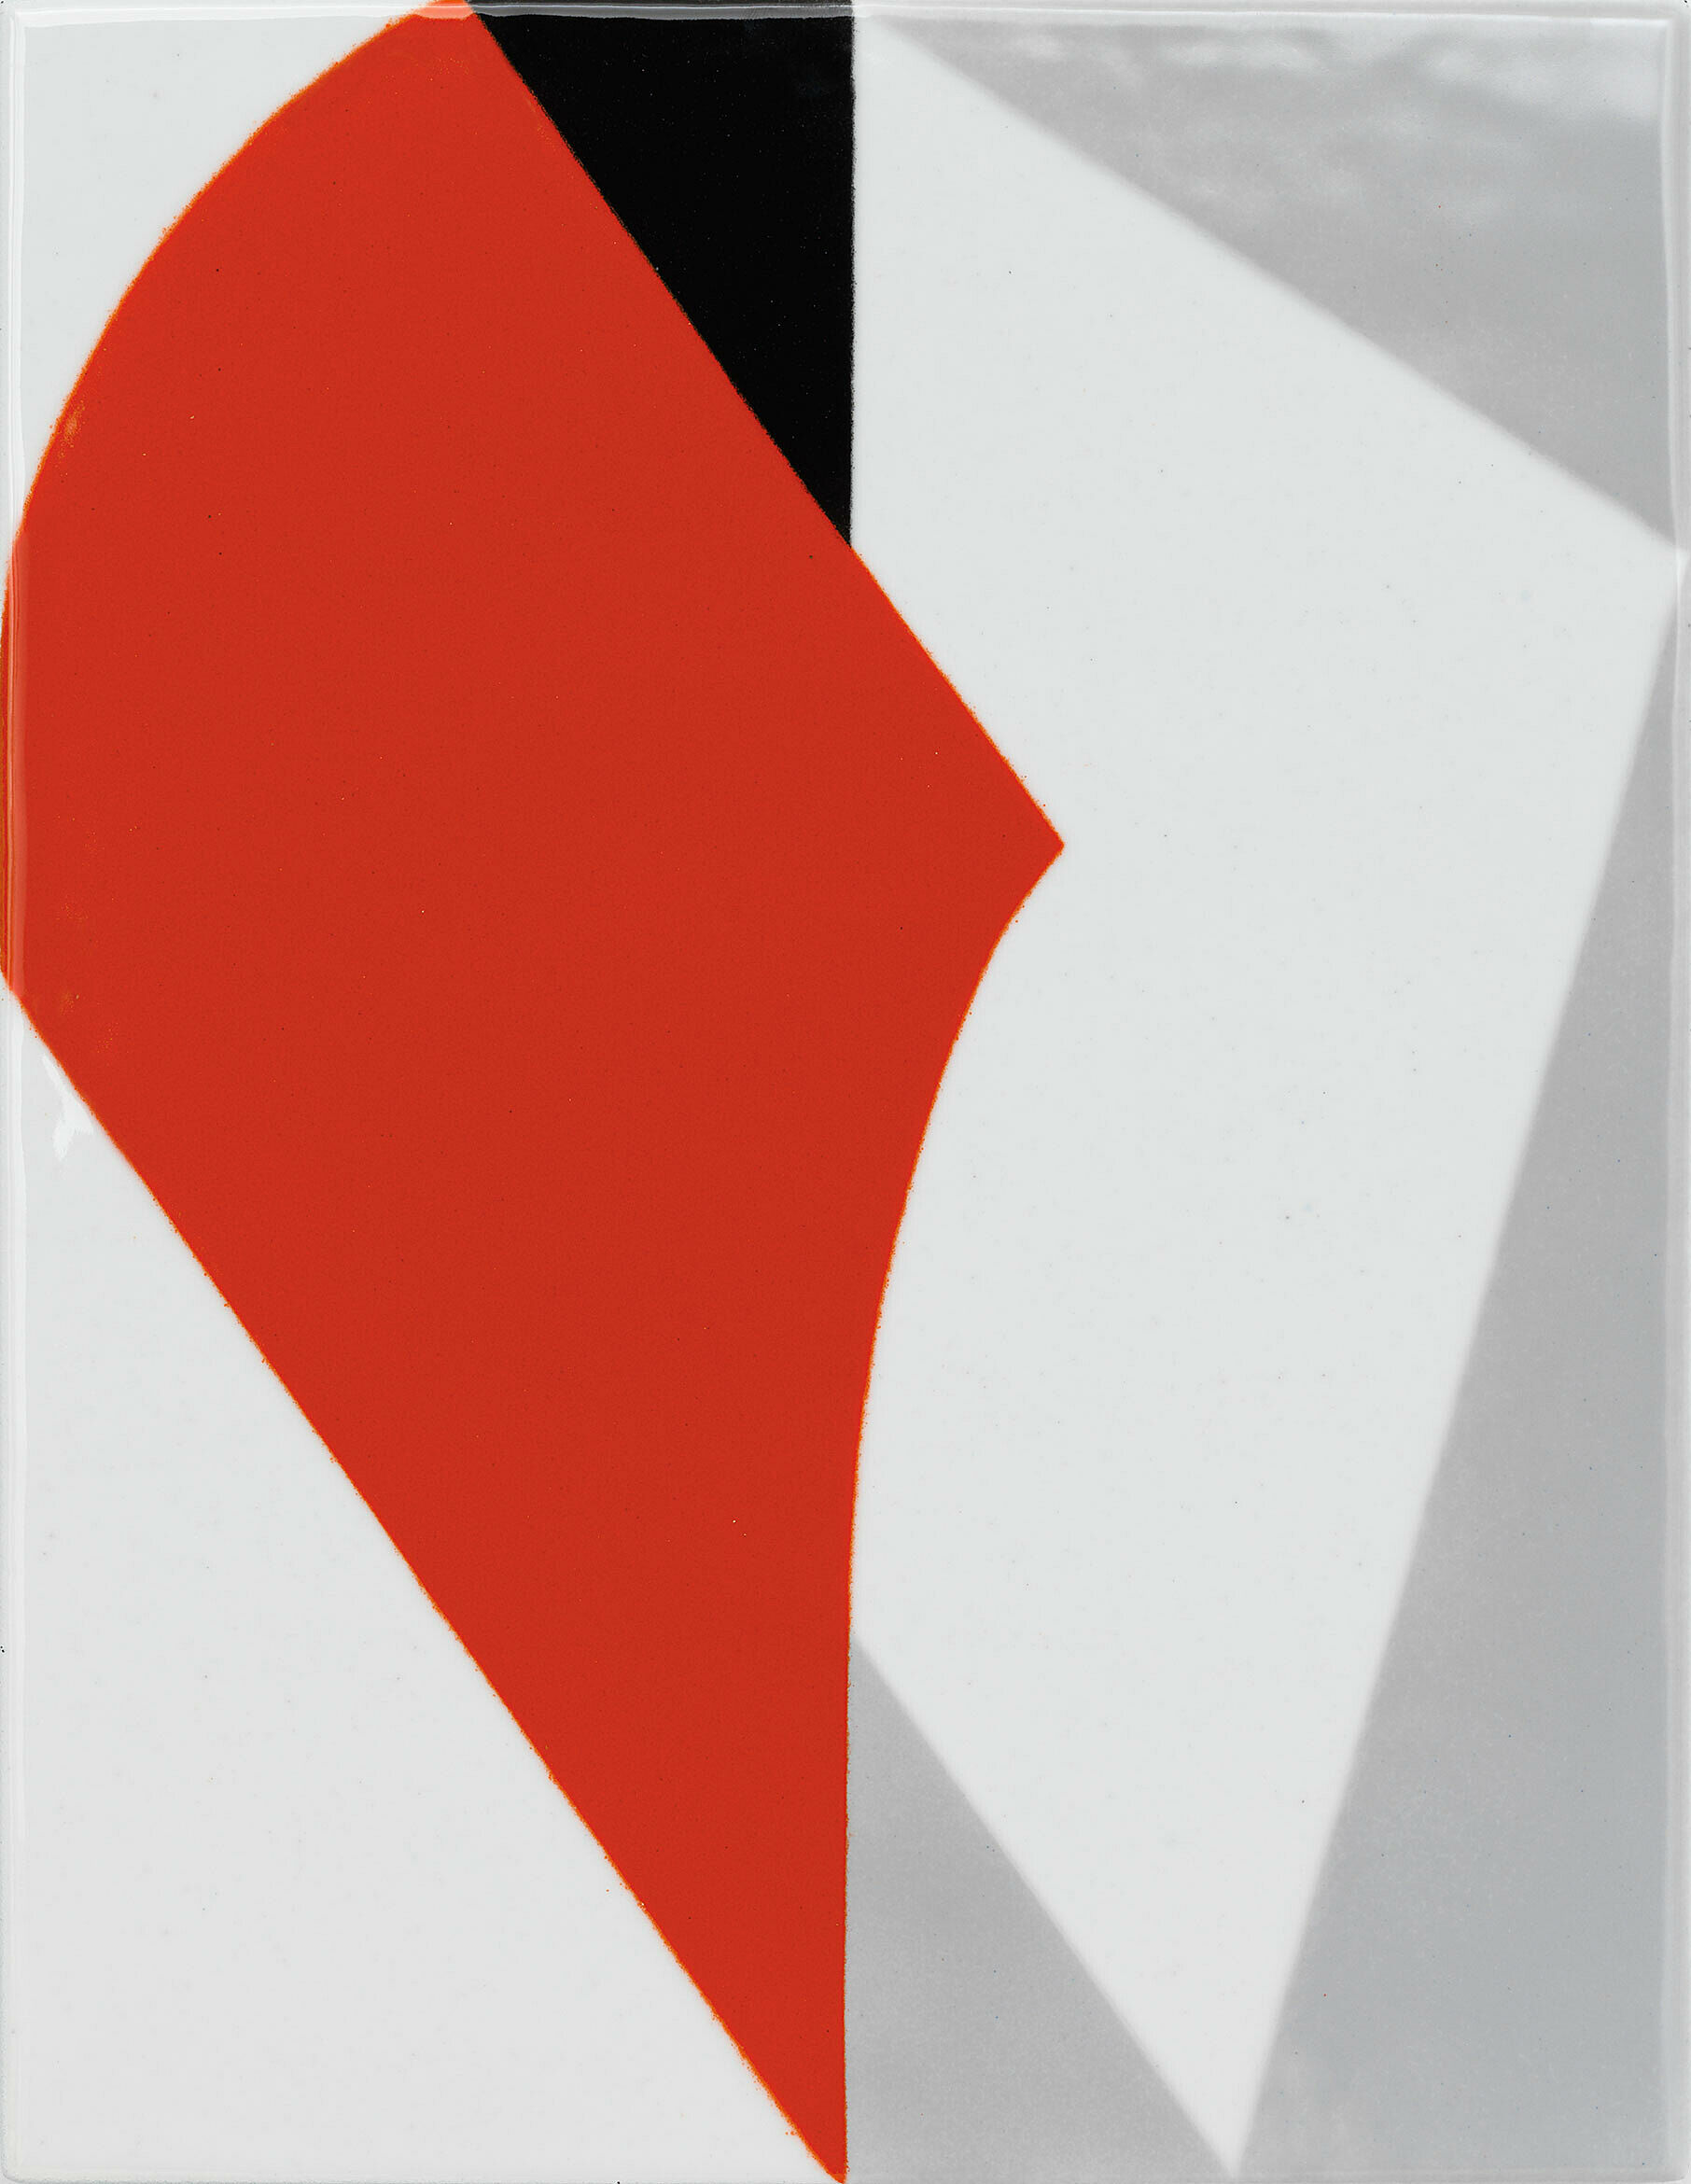 Abstract piece in red, black, white, and gray